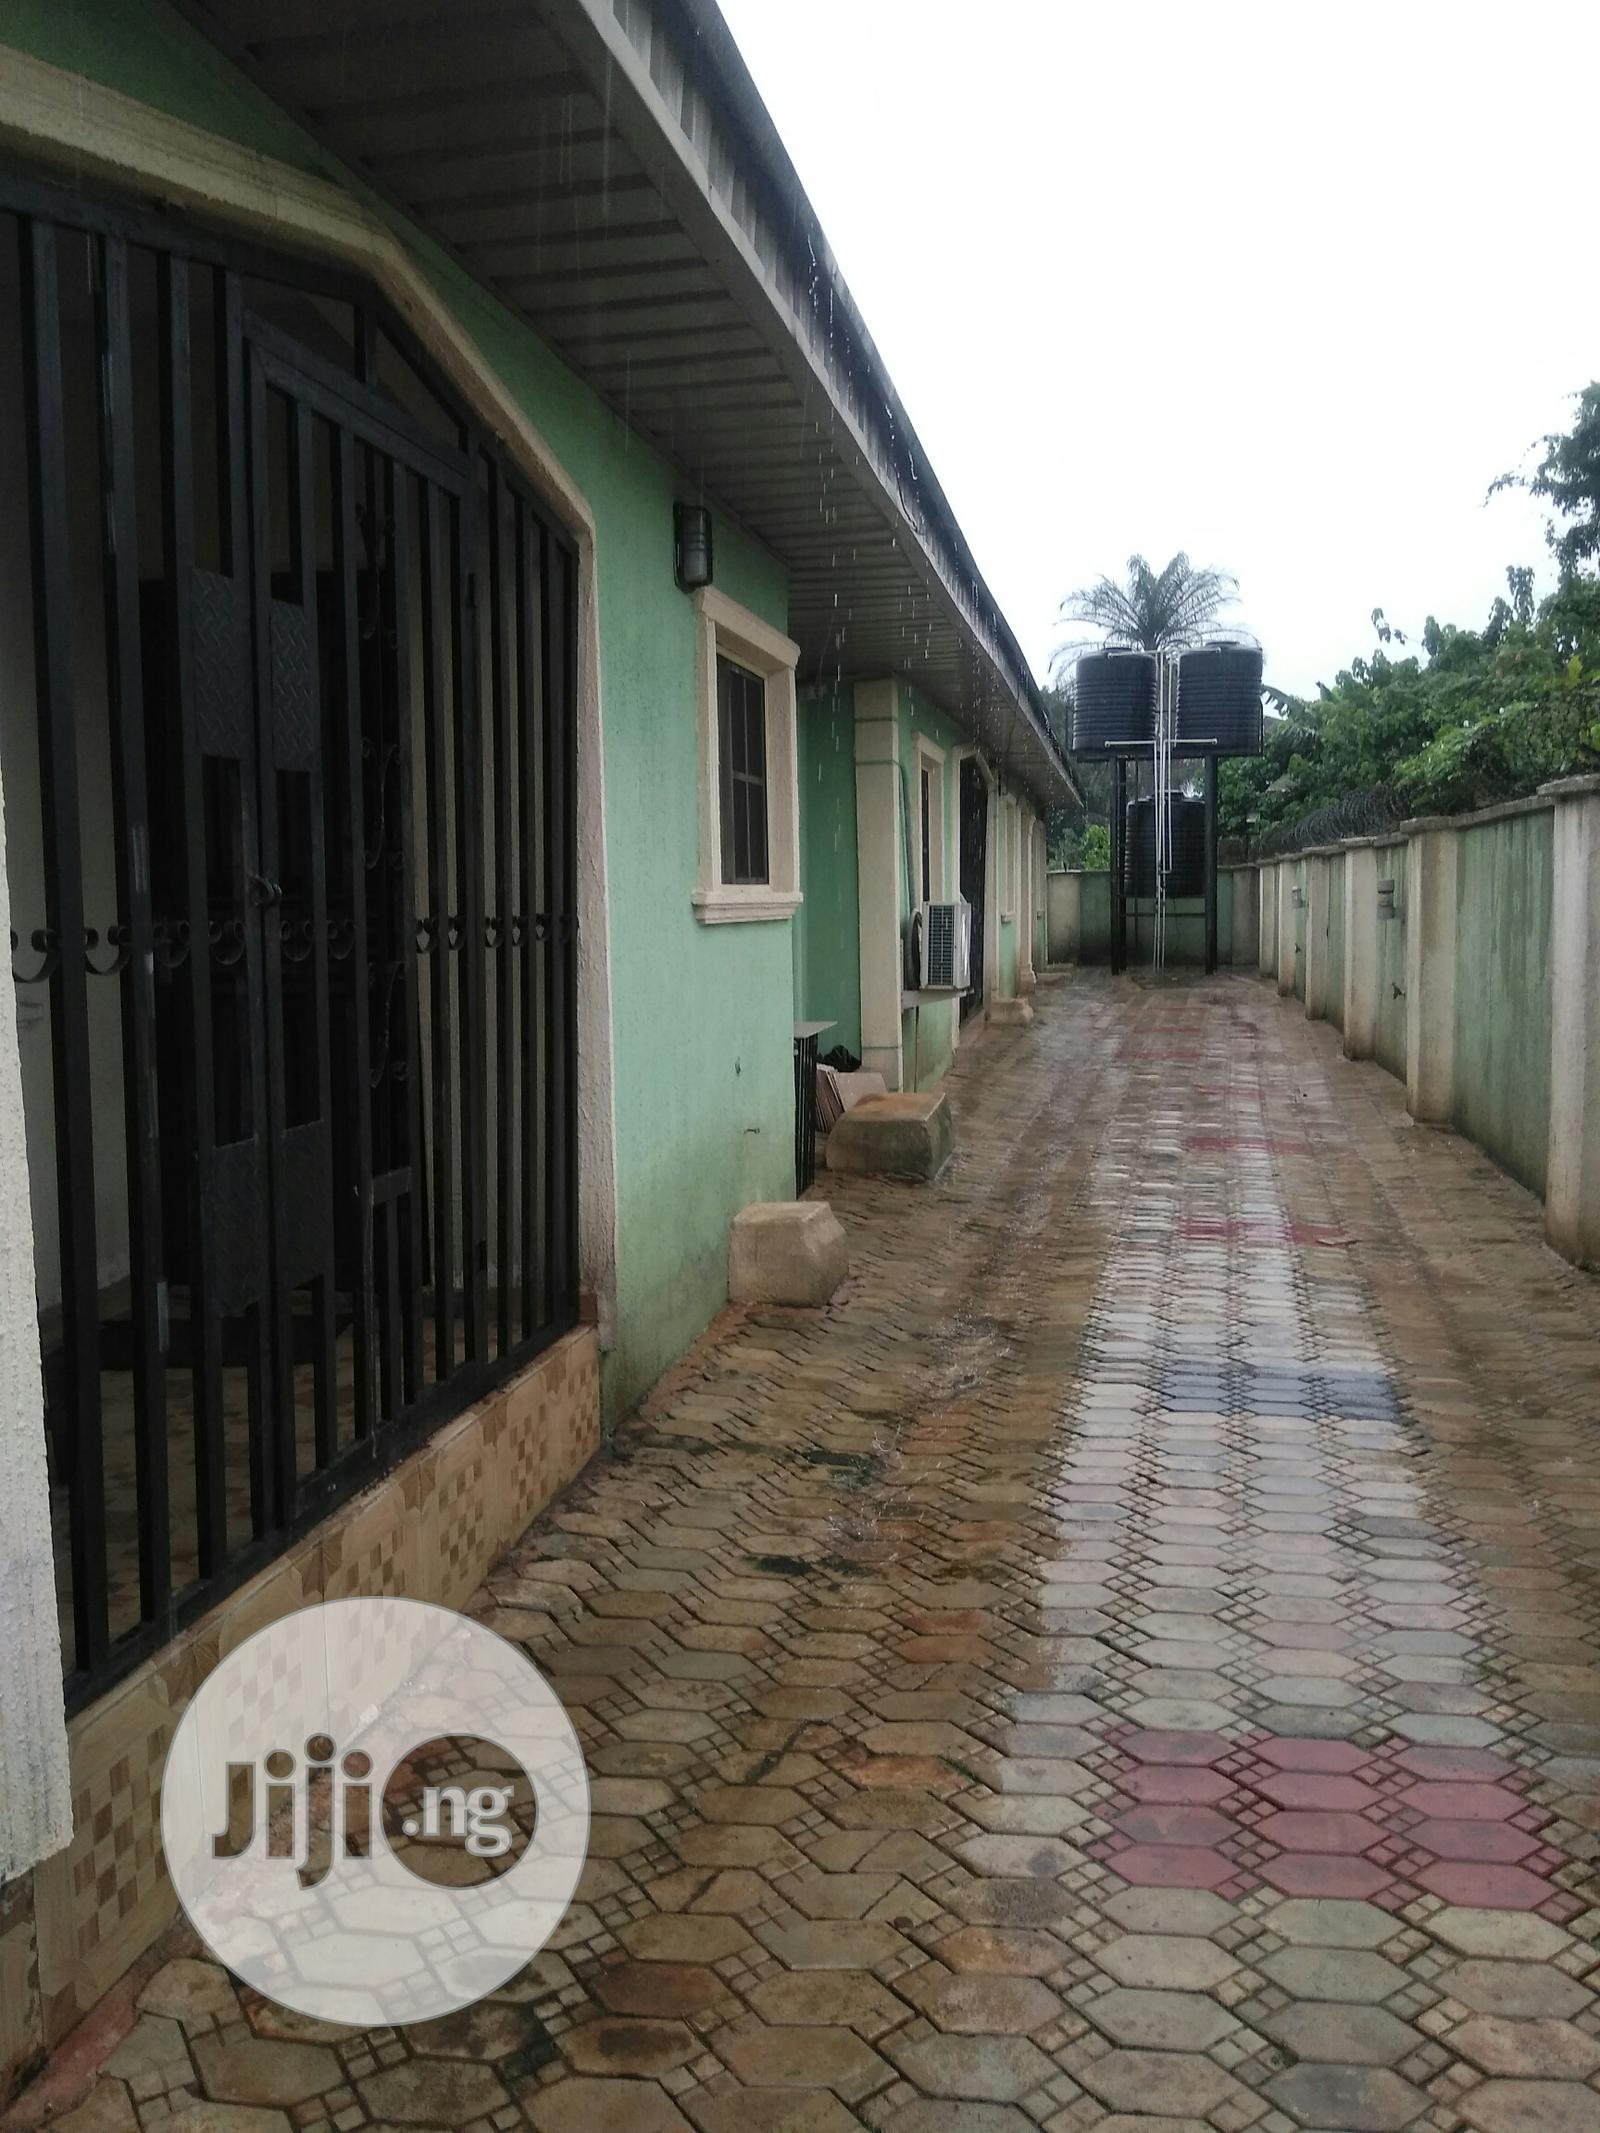 Simple 2 Bedroom Flat to Let, Just 3 Persons in the Compound